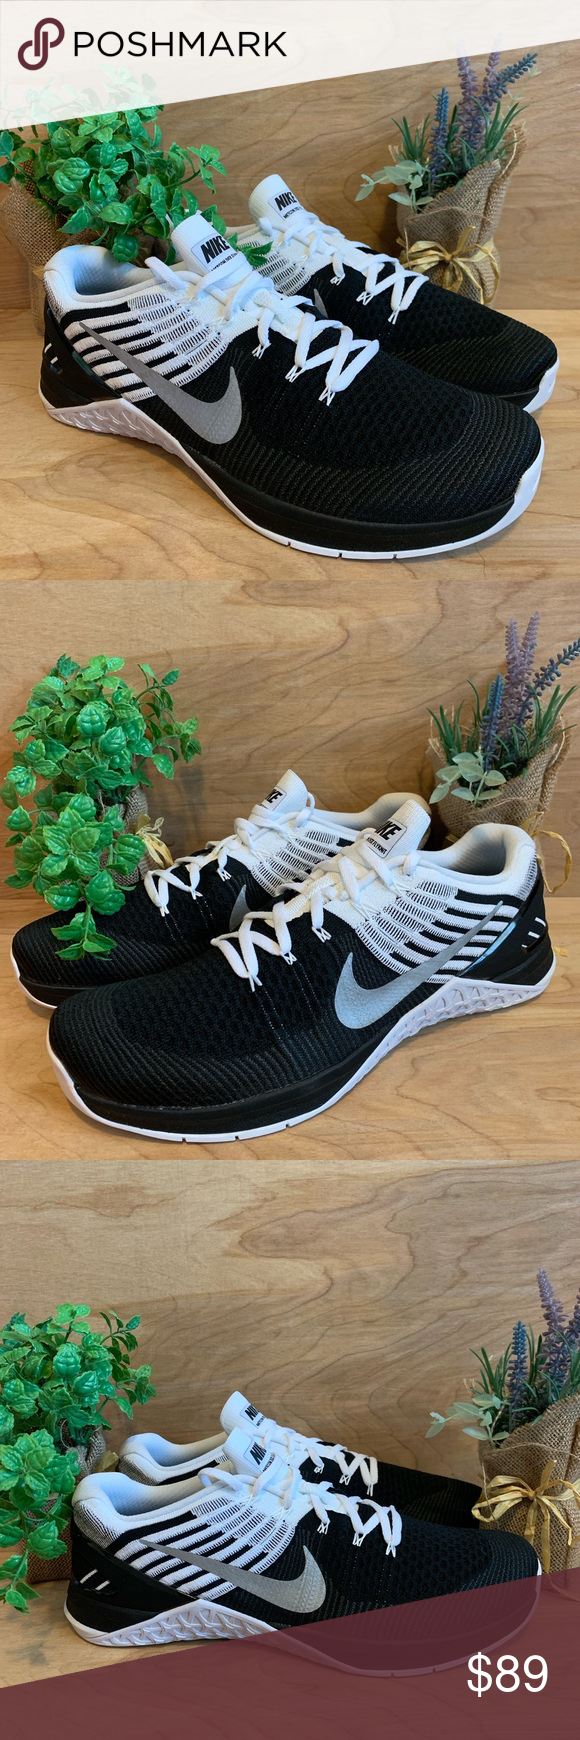 7ab383b305c5 Nike Metcon Dsx Flyknit Training Shoes Size 13 NEW (NEVER WORN) Nike Metcon  DSX